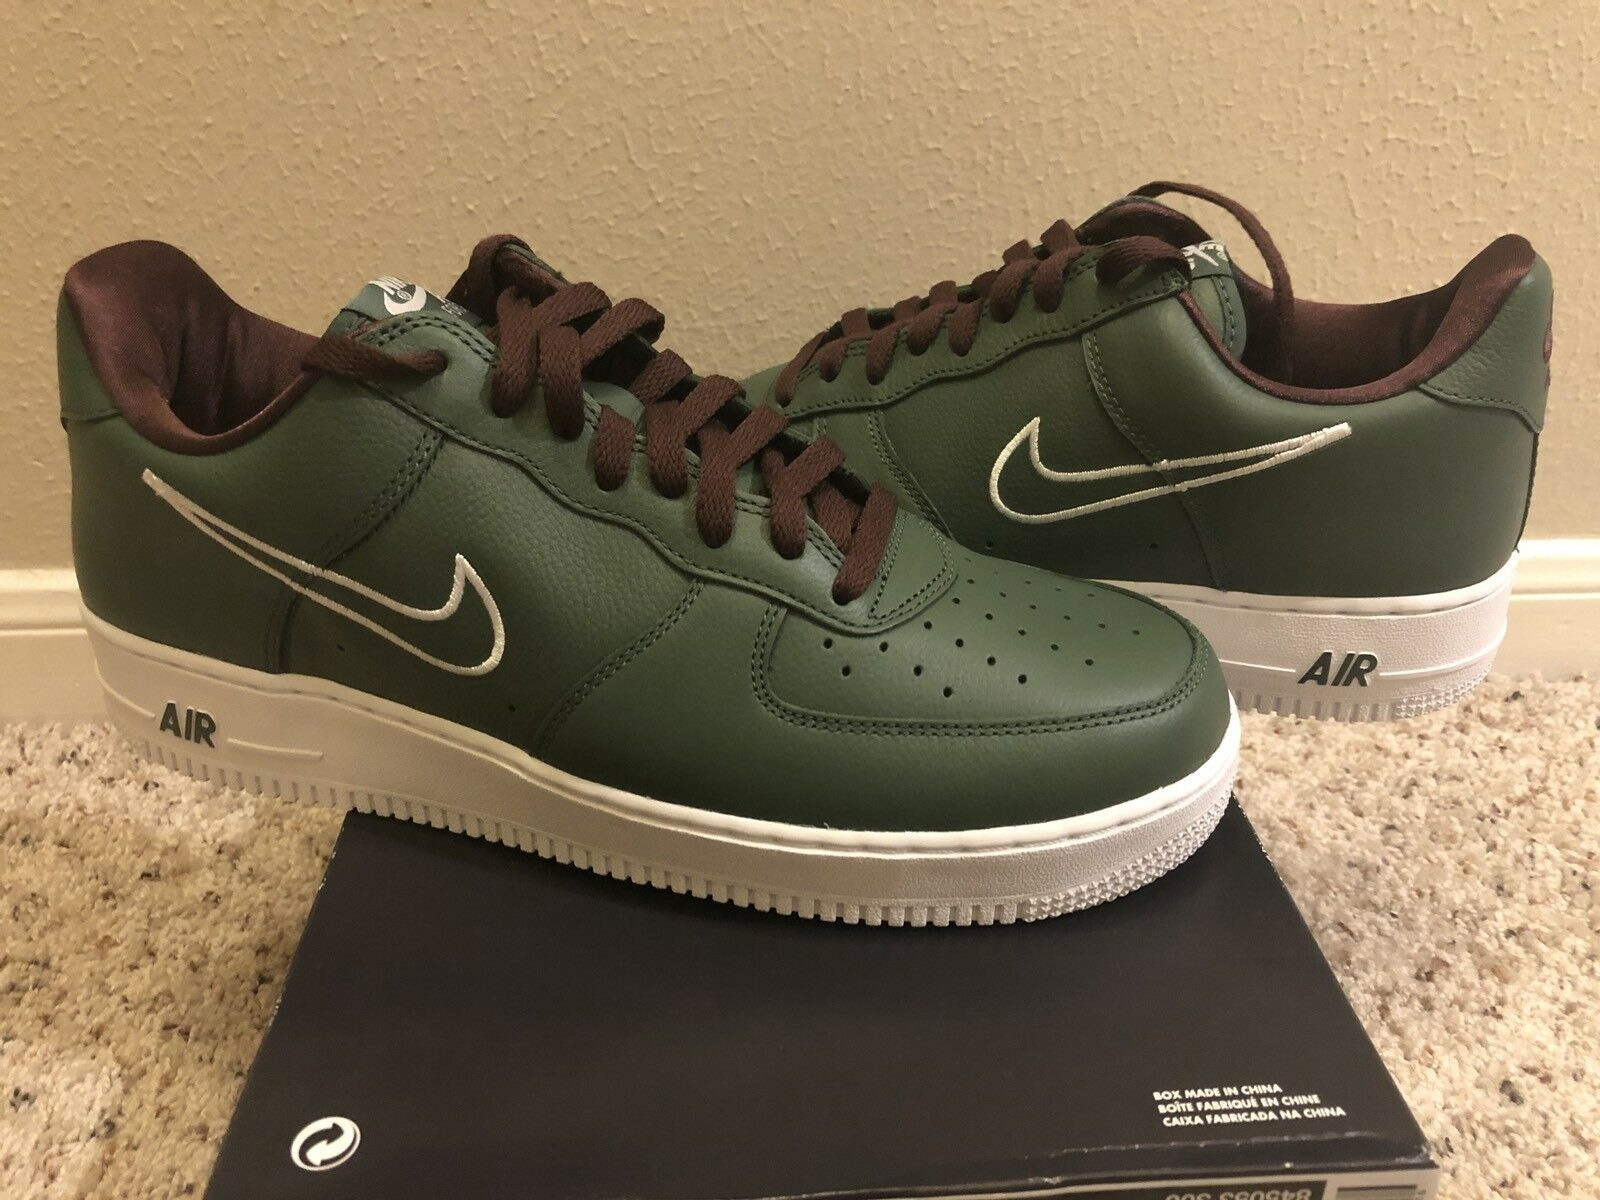 New DS 10.5 Nike Air Force 1 Hong Kong Forest Green Premium Co.jp